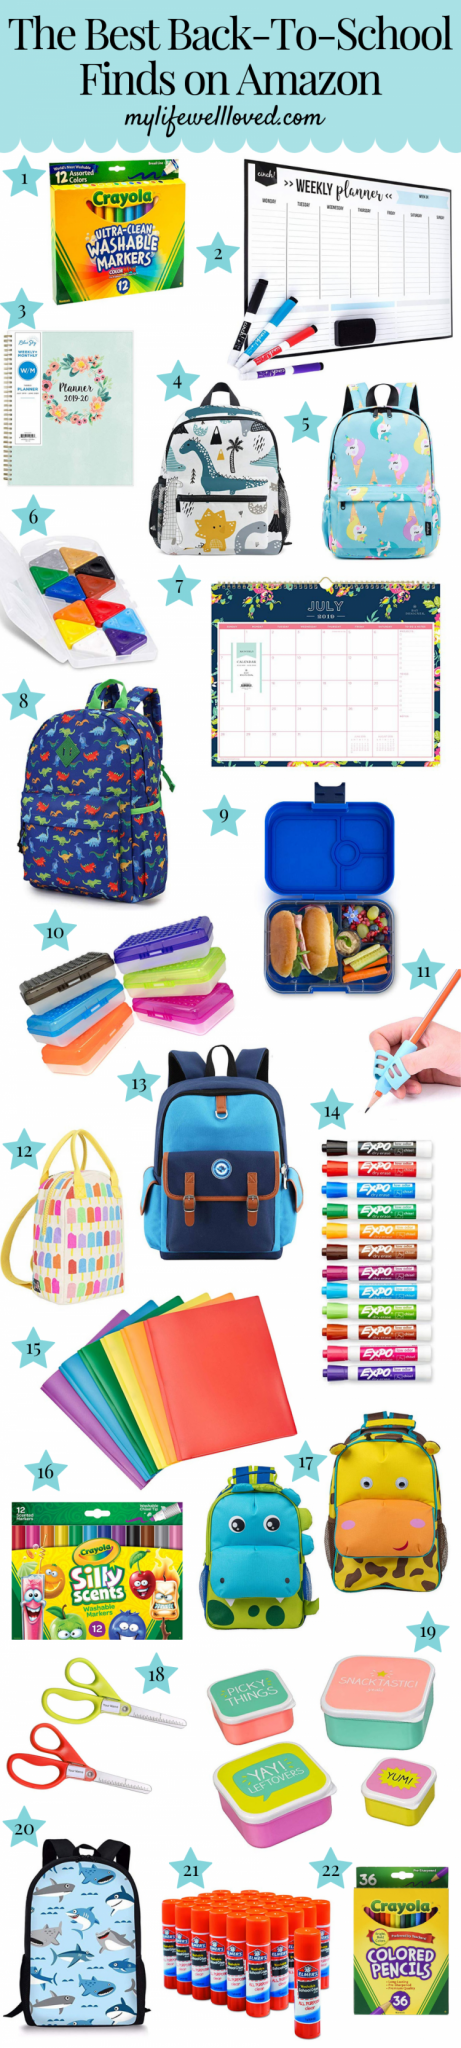 The Best Back-to-School Finds on Amazon by Life + Style blogger, Heather Brown // My Life Well Loved